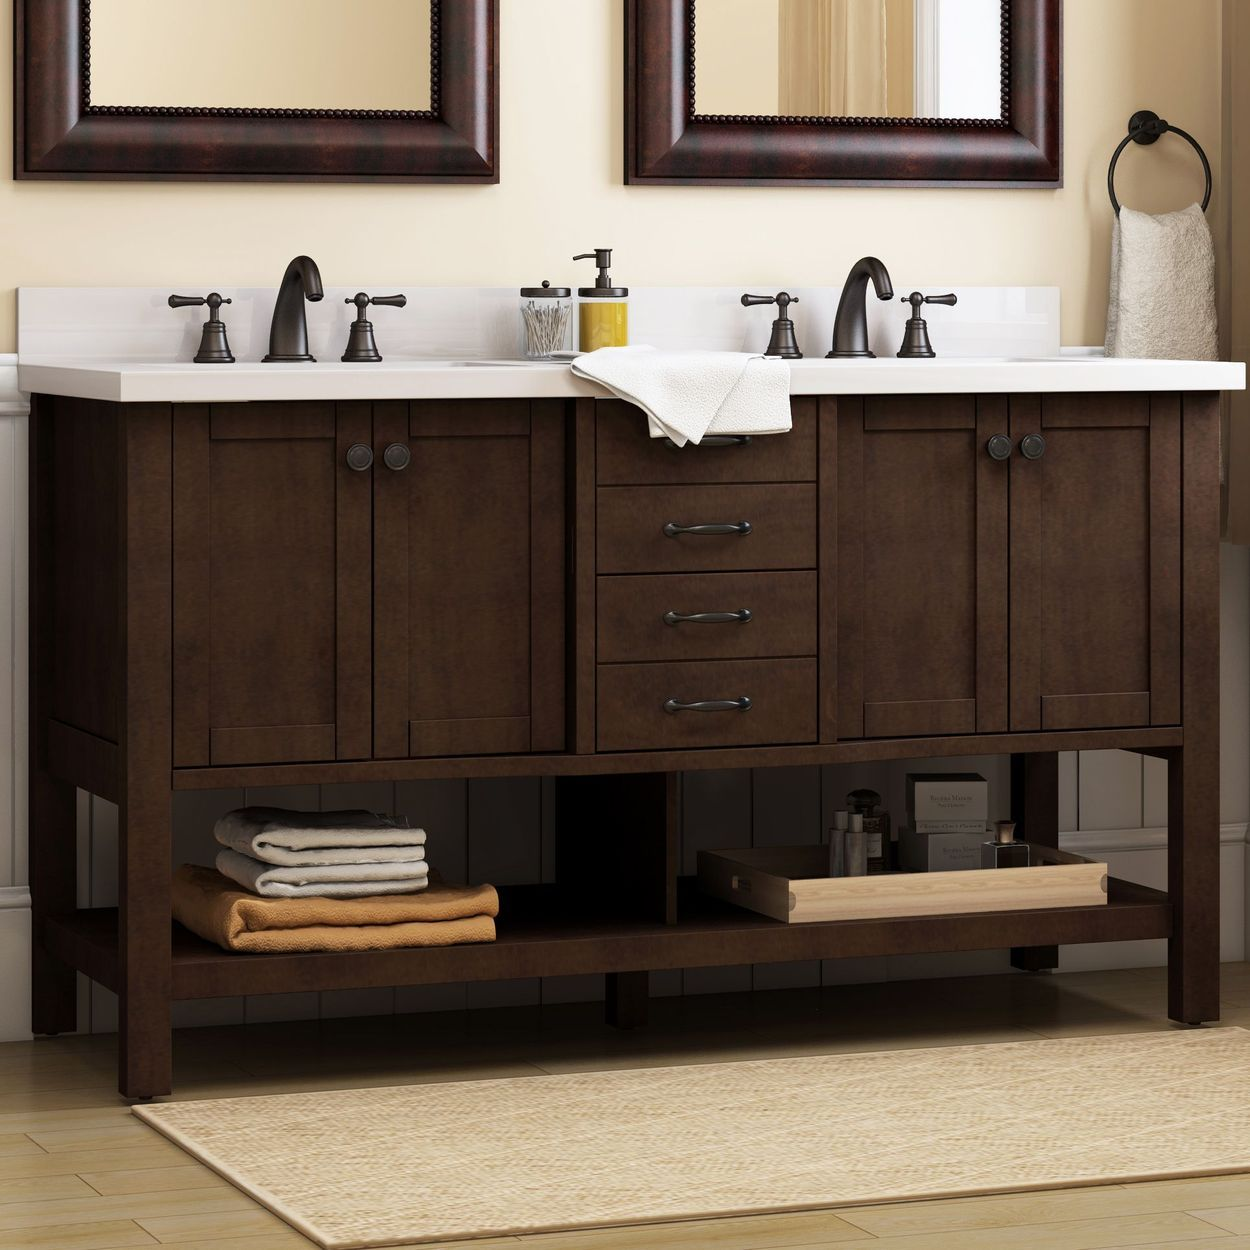 Allen Roth Kingscote 60 In Espresso Double Sink Bathroom Vanity With White Engineered Stone Top Lowes Com Bathroom Vanity Double Sink Bathroom Vanity Double Sink Bathroom